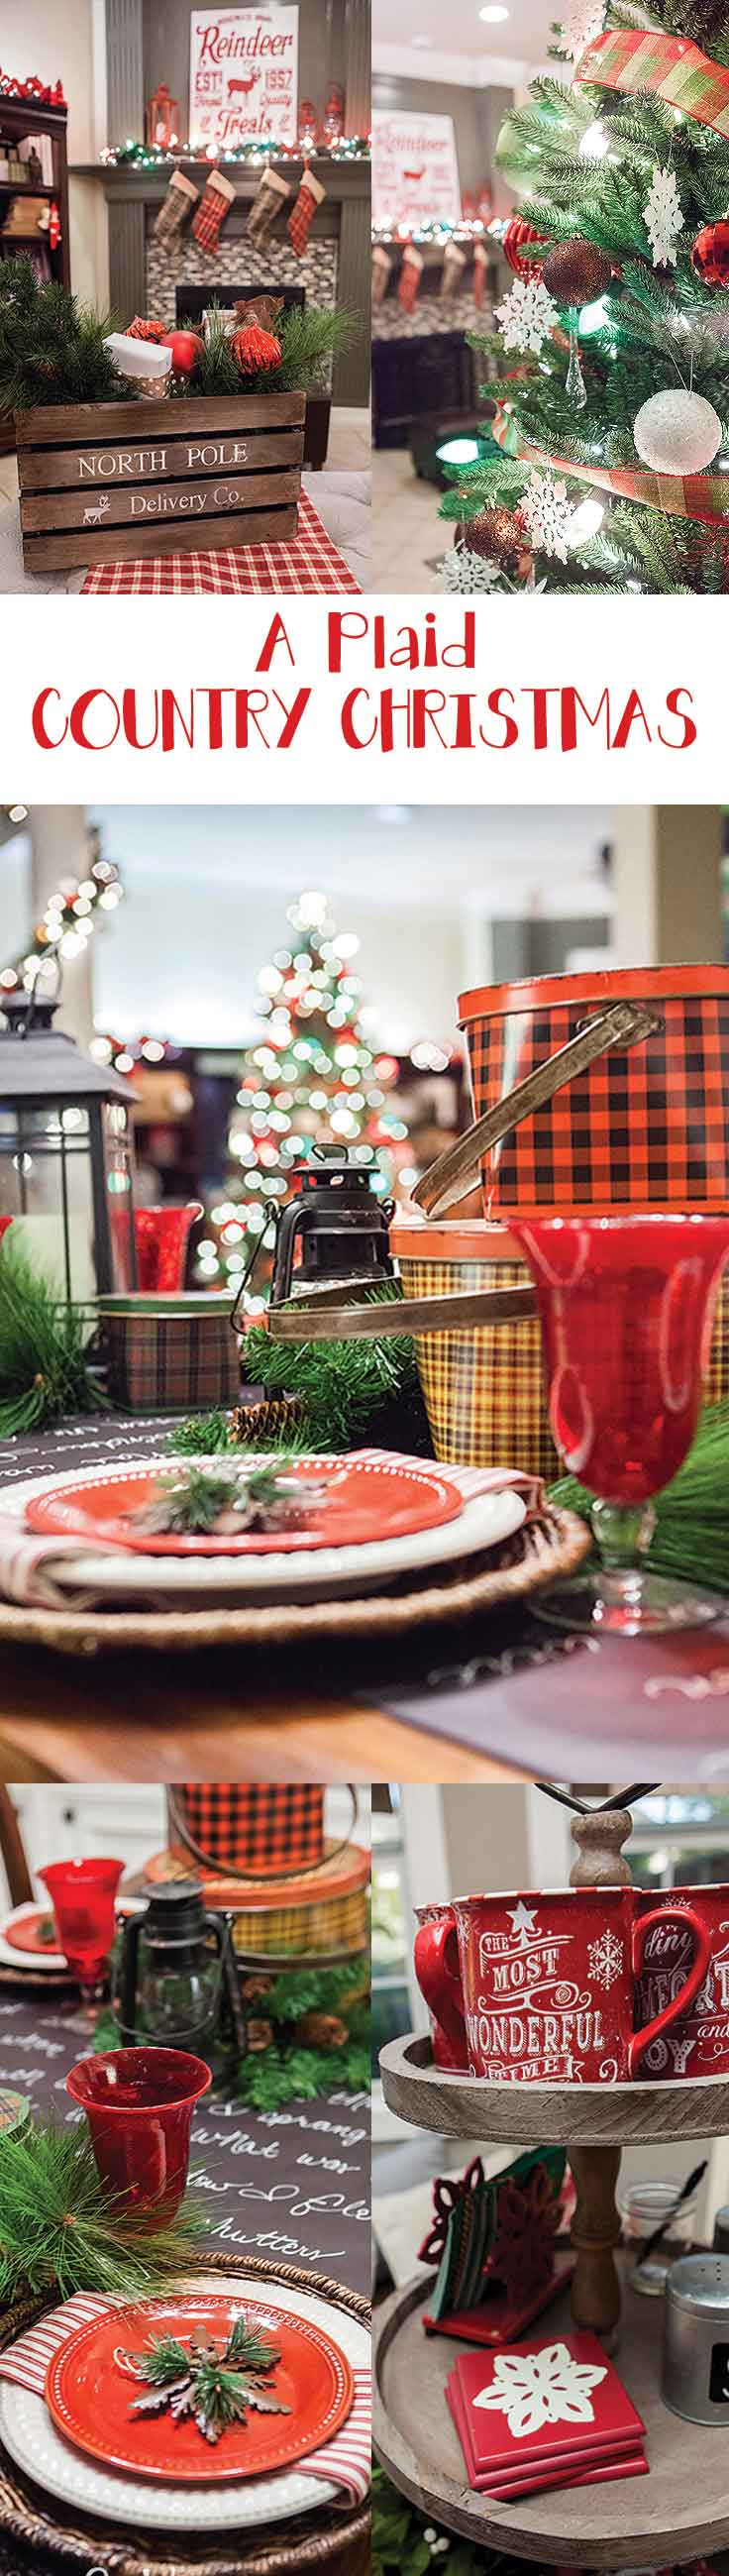 A truly stunning Christmas Home Tour as part of the Christmas in the Country Blog Tour. This Plaid Inspired Country Christmas will knock your socks off. Features tours of the Living room, Dining Room and a Cocoa hot chocolate bar in the Breakfast room. There is so much inspiration for Christmas decorations in this one post. Be prepared to feel like you are cuddled up by the fire in a warm Northwoods comfy cottage! #country #Christmas #Plaid #Holidaydecorating #Holiday ideas #Holidays via @mrsmajorhoff